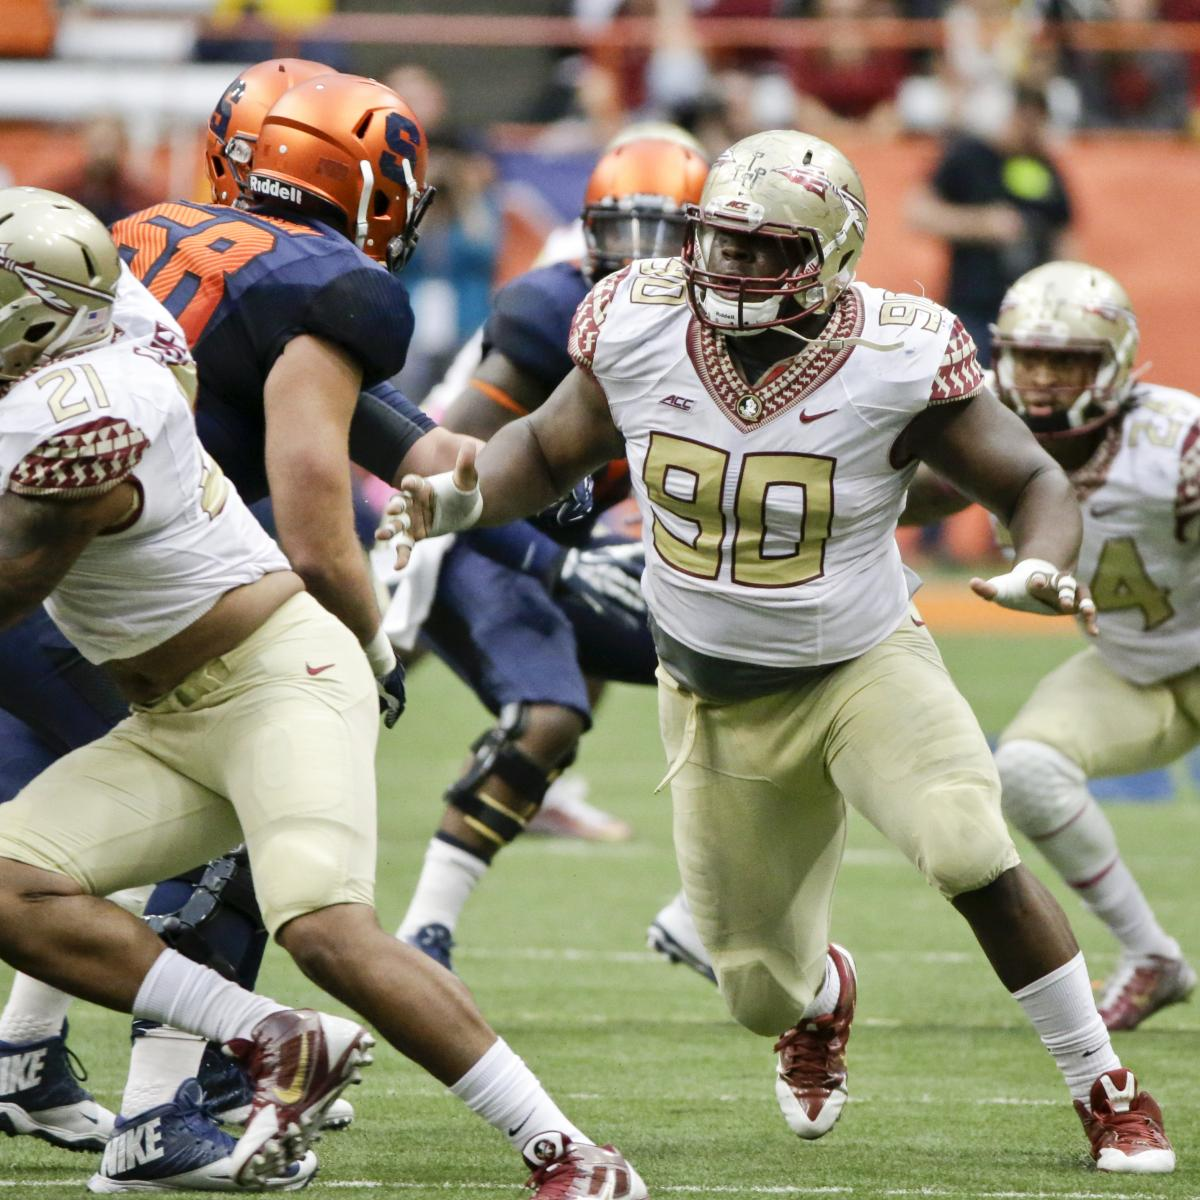 San Diego Chargers Draft: Why San Diego Chargers Absolutely Must Draft Eddie Goldman